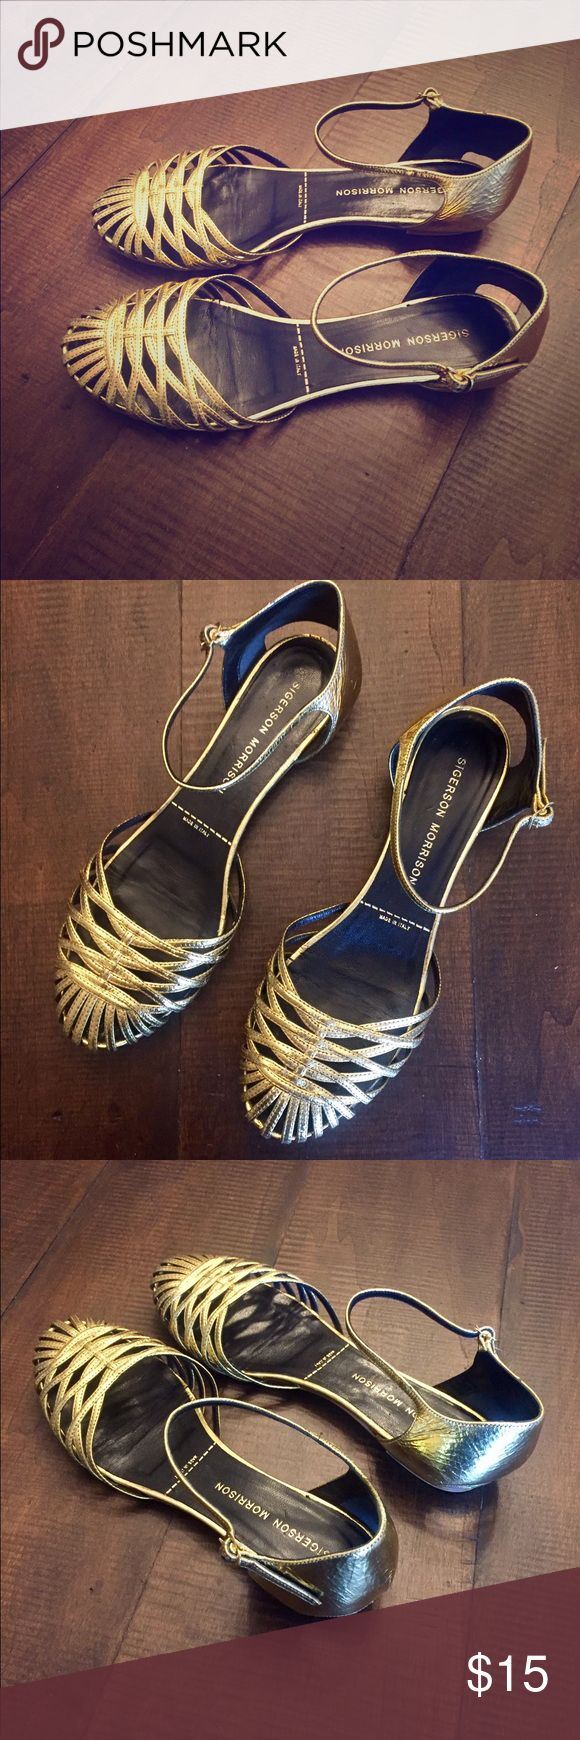 Women's Sigerson Morrison Gold Sandals Size 6 Women's Sigerson Morrison Gold Sandals...Size 6...Made in Italy...only worn one or two times...in great shape. Sigerson Morrison Shoes Sandals